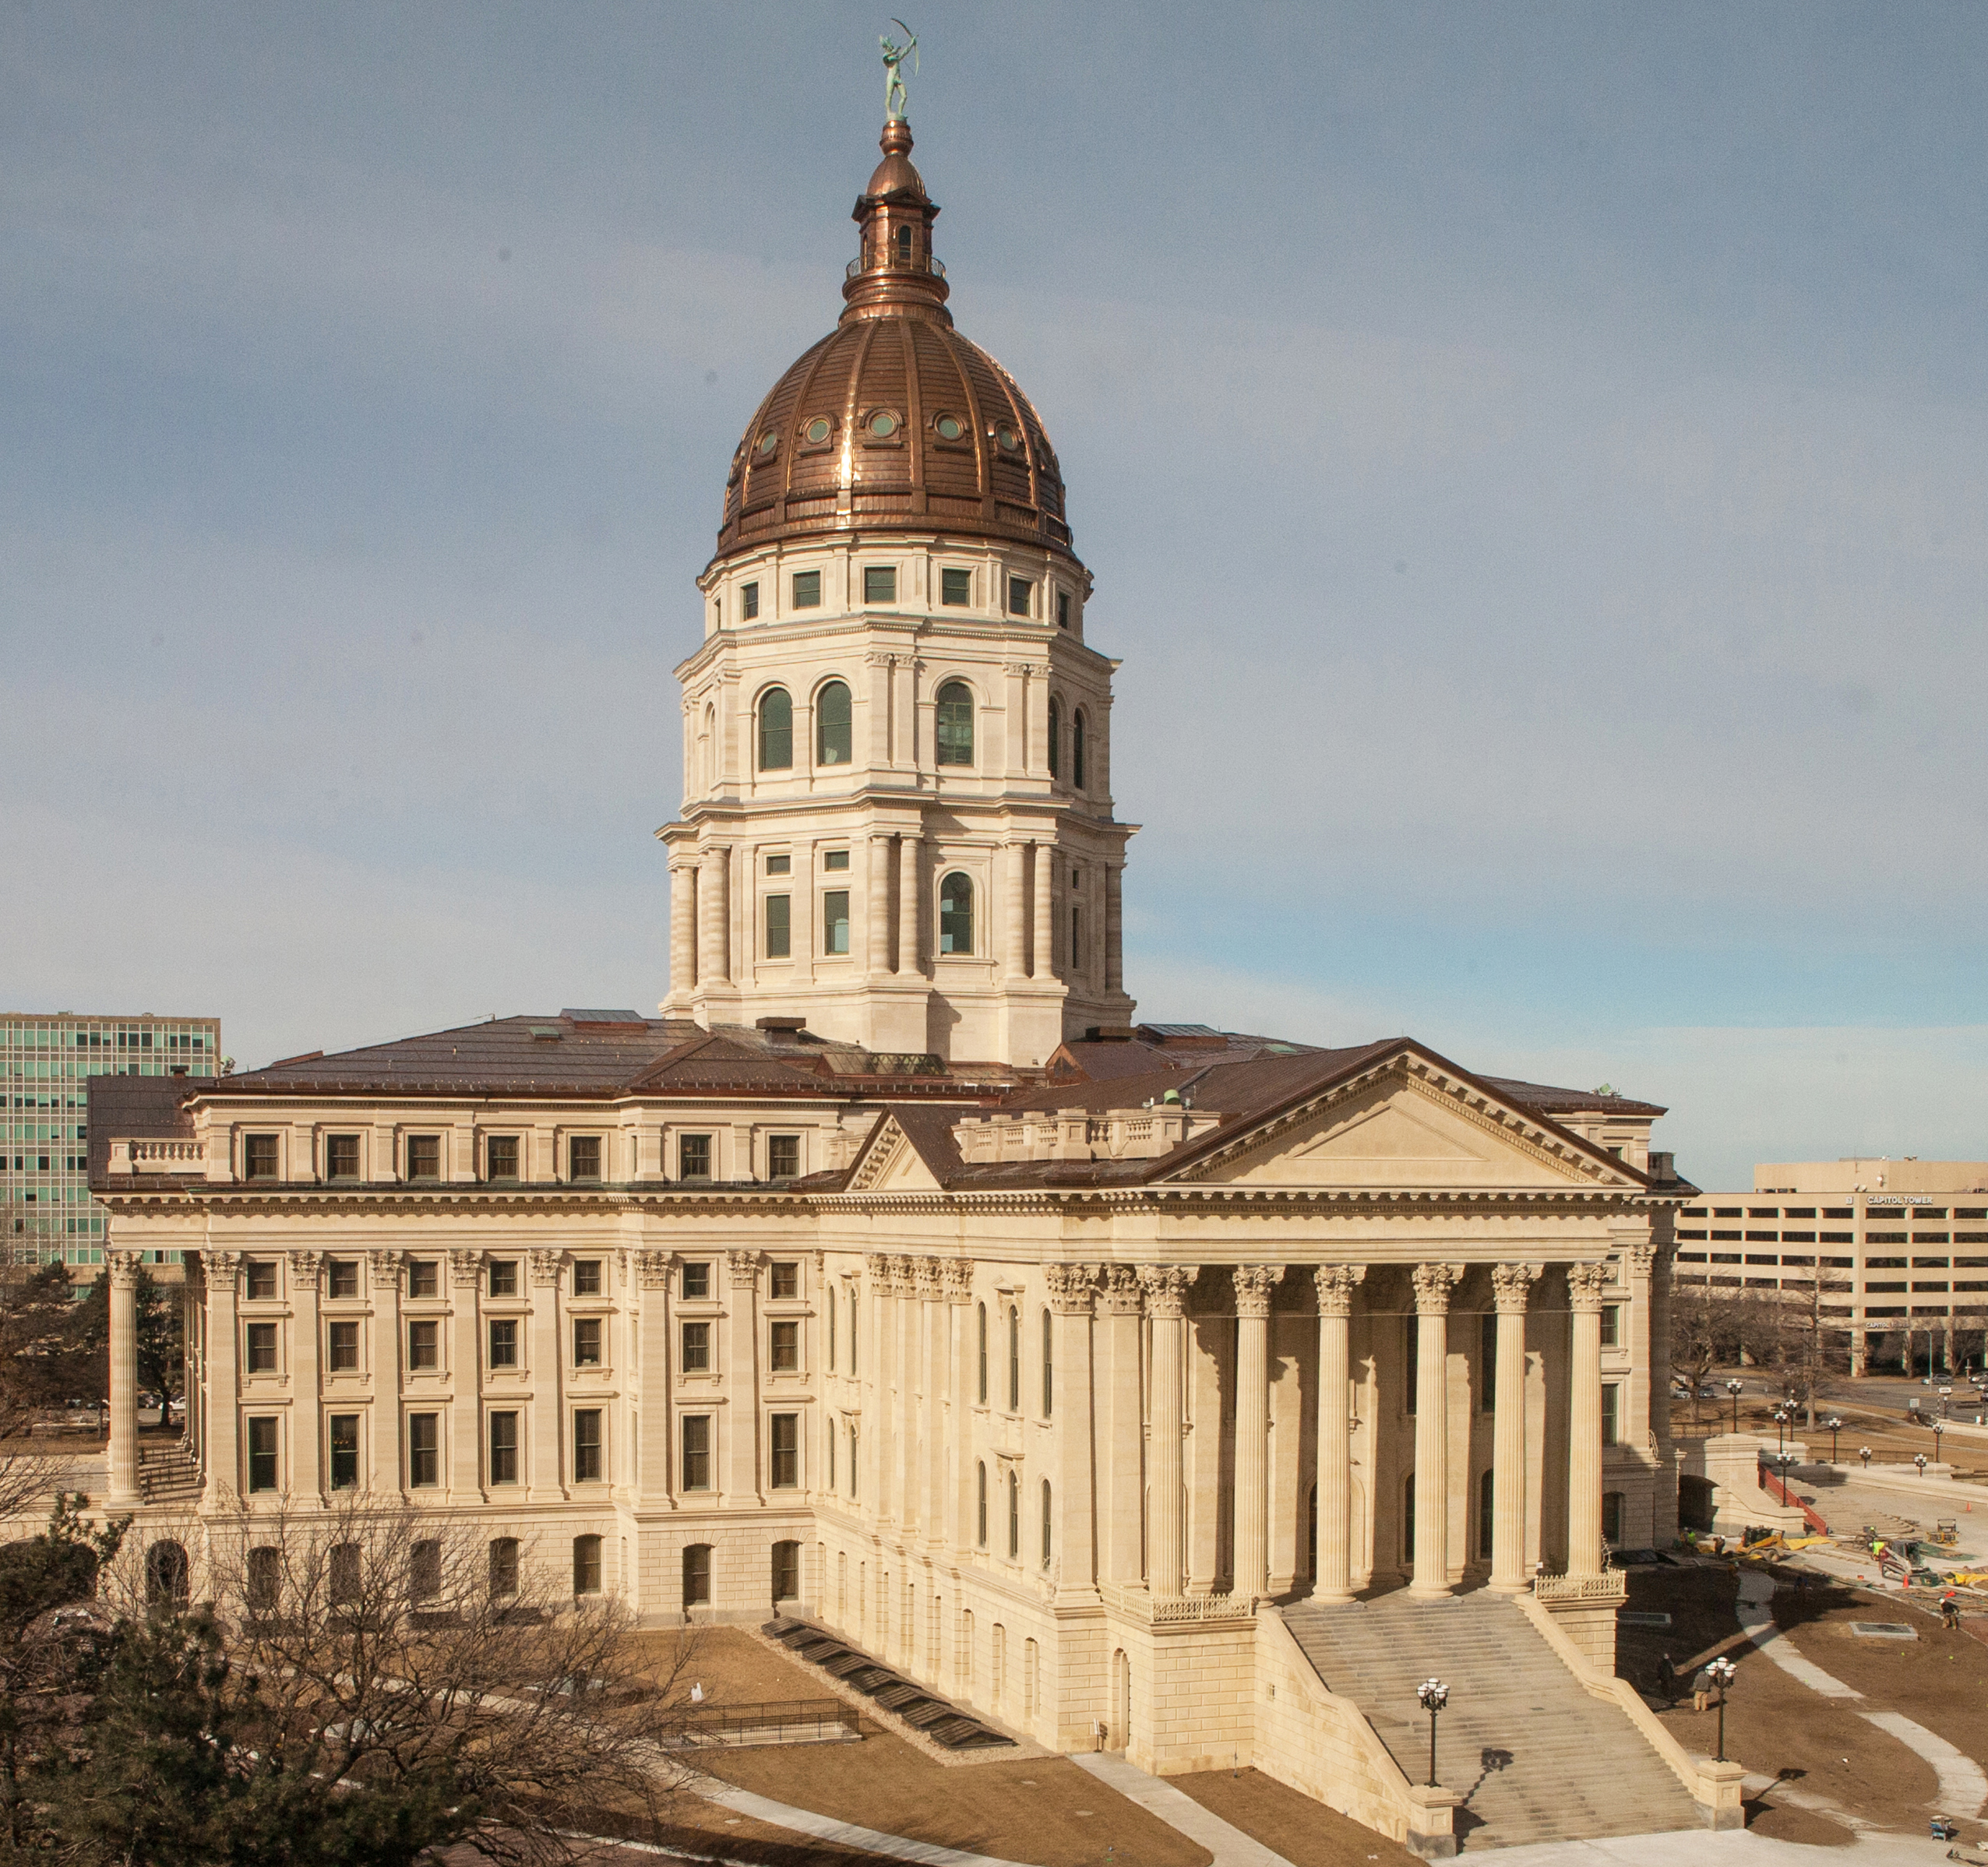 The kansas statehouse in topeka kan recently underwent a nearly